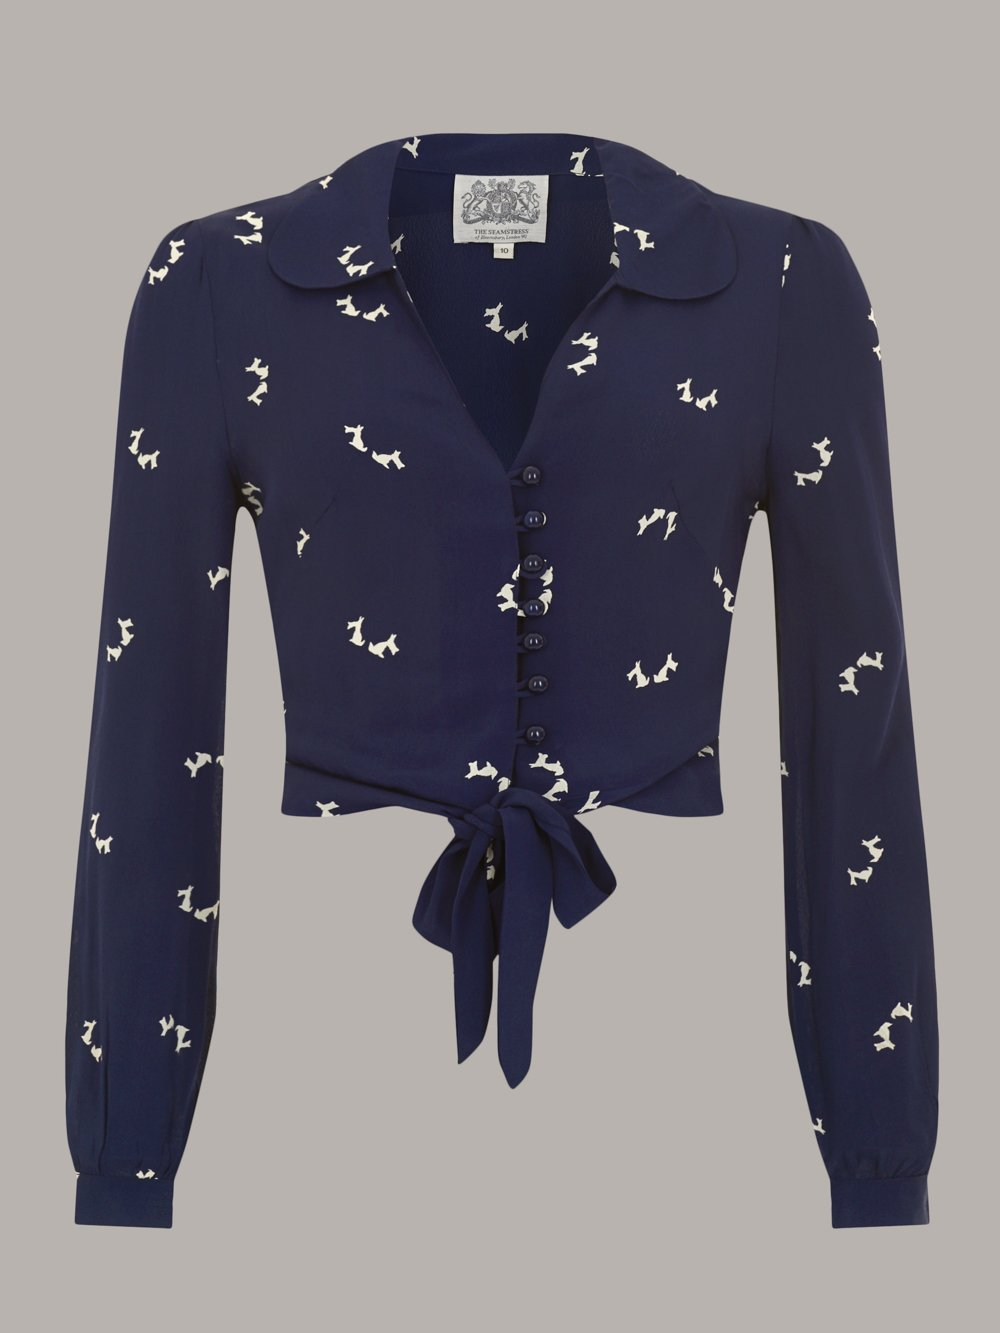 "The Seamstress Of Bloomsbury ""Clarice"" Long Sleeve Blouse in Navy Blue with Doggy Print, Authentic 1940s Vintage Style - RocknRomance Clothing"